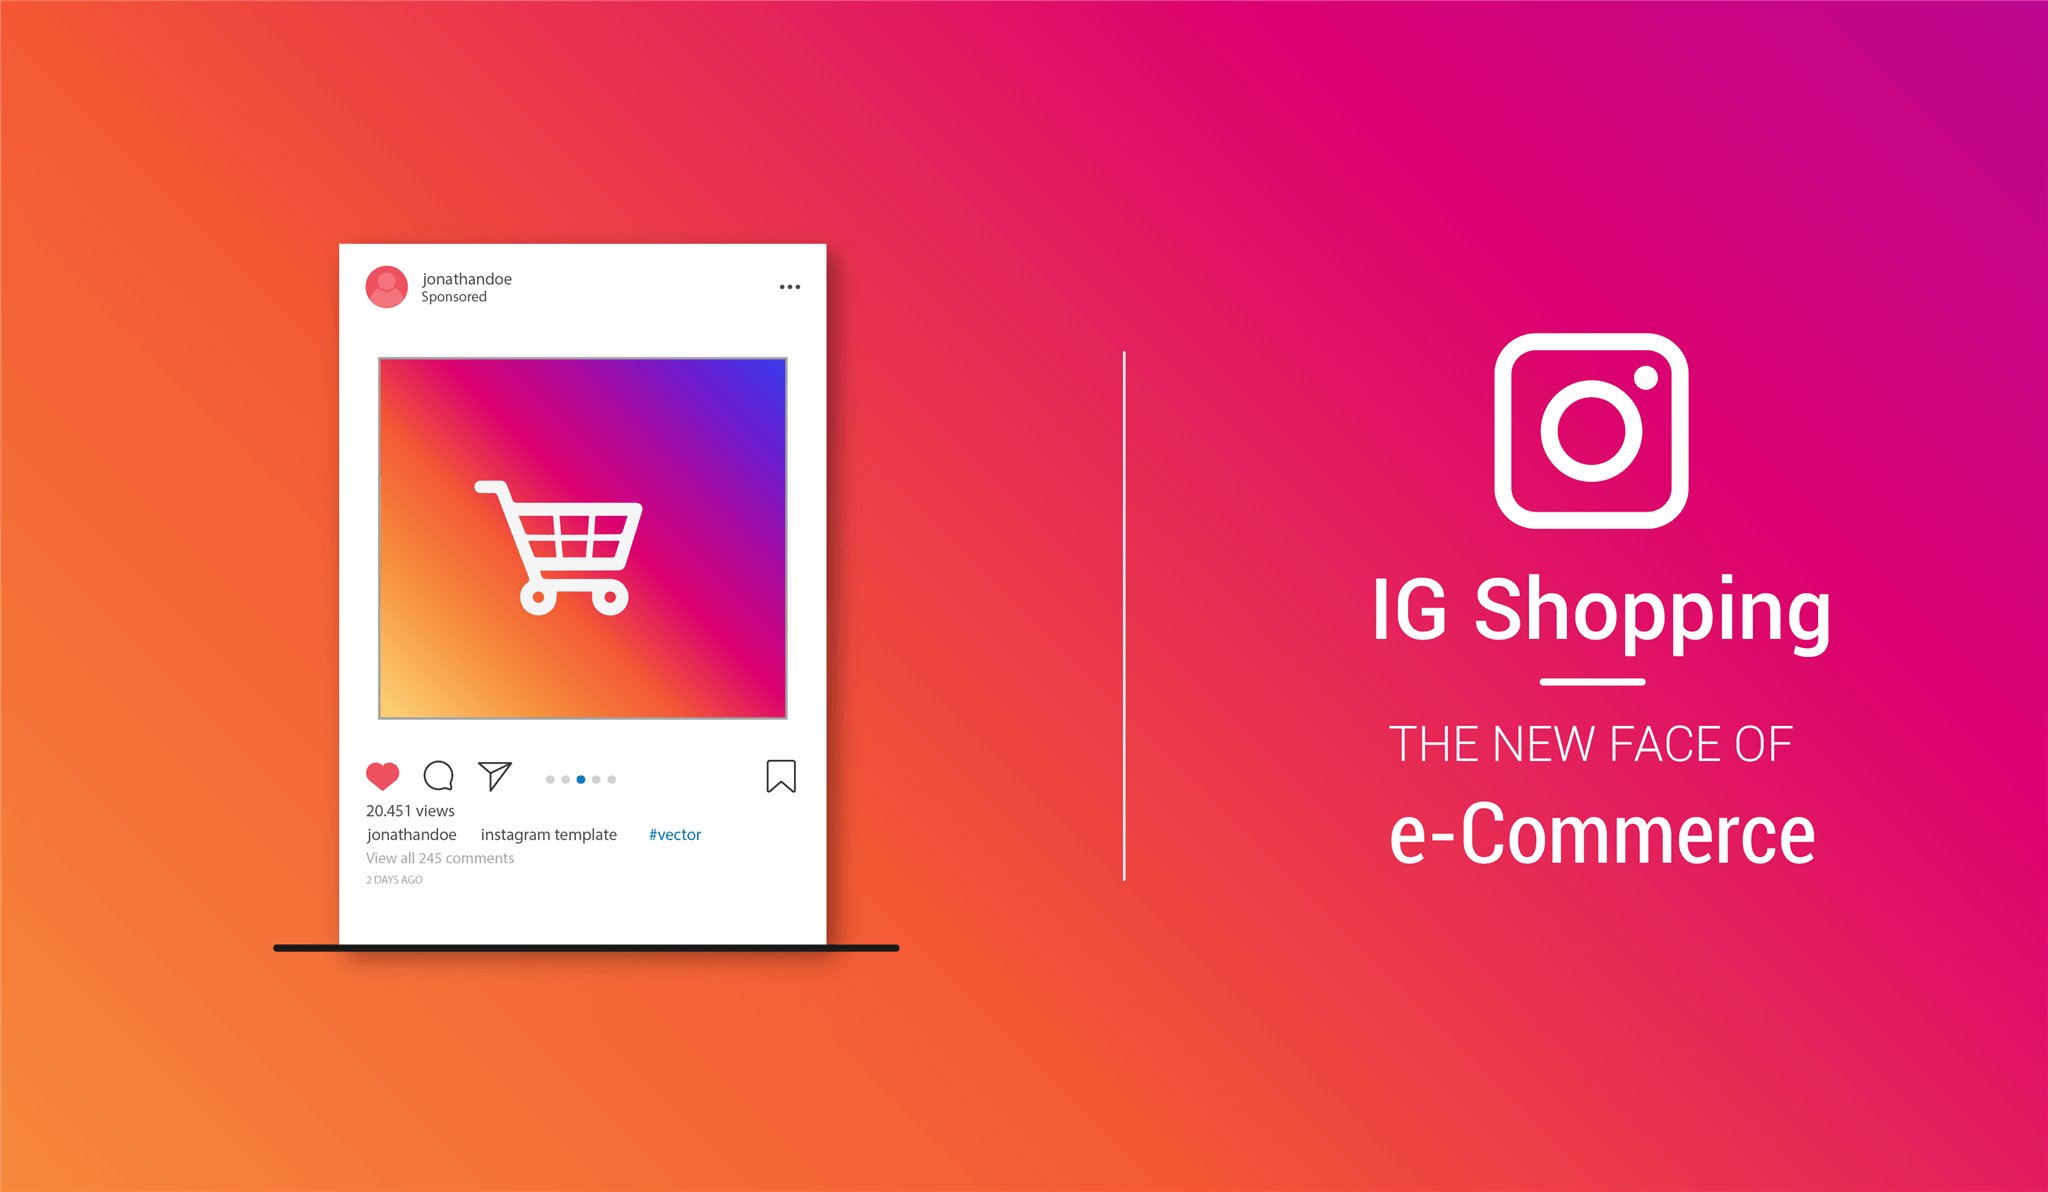 Instagram To Bring Standalone e-Commerce App For Shopping